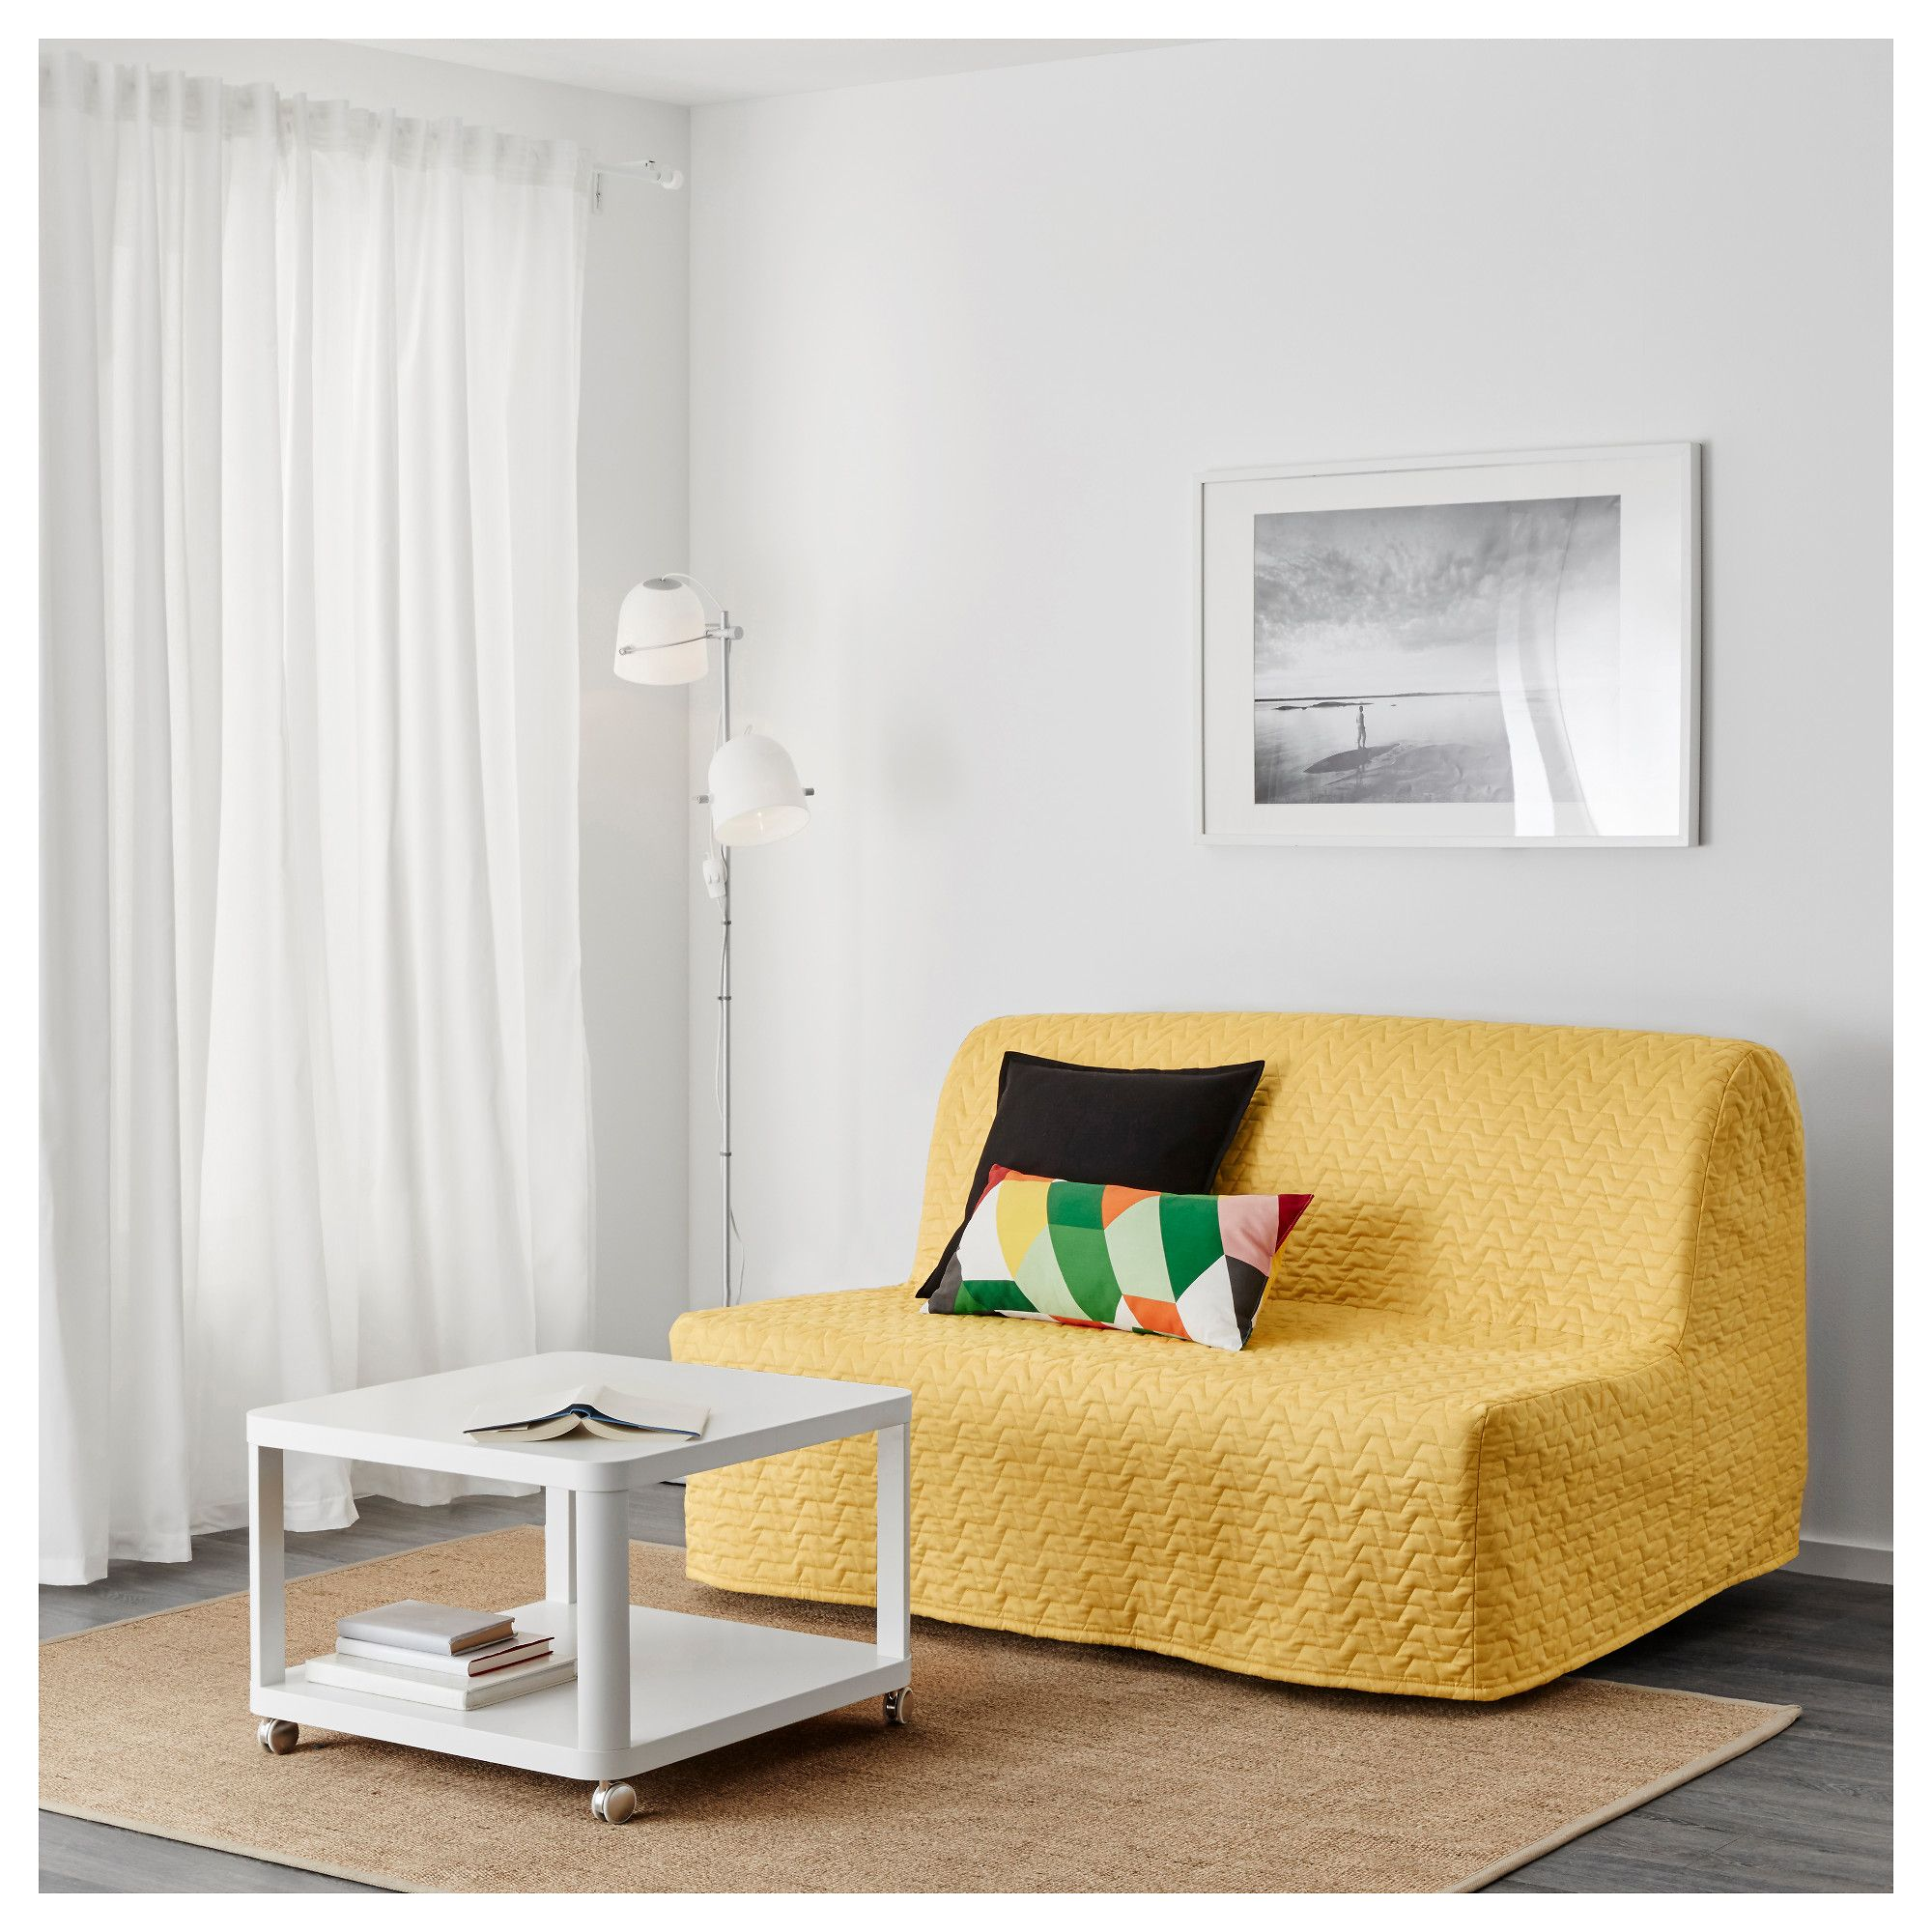 Ikea Bettsessel Murbo Lycksele Murbo Two Seat Sofa Bed Vallarum Yellow Foam